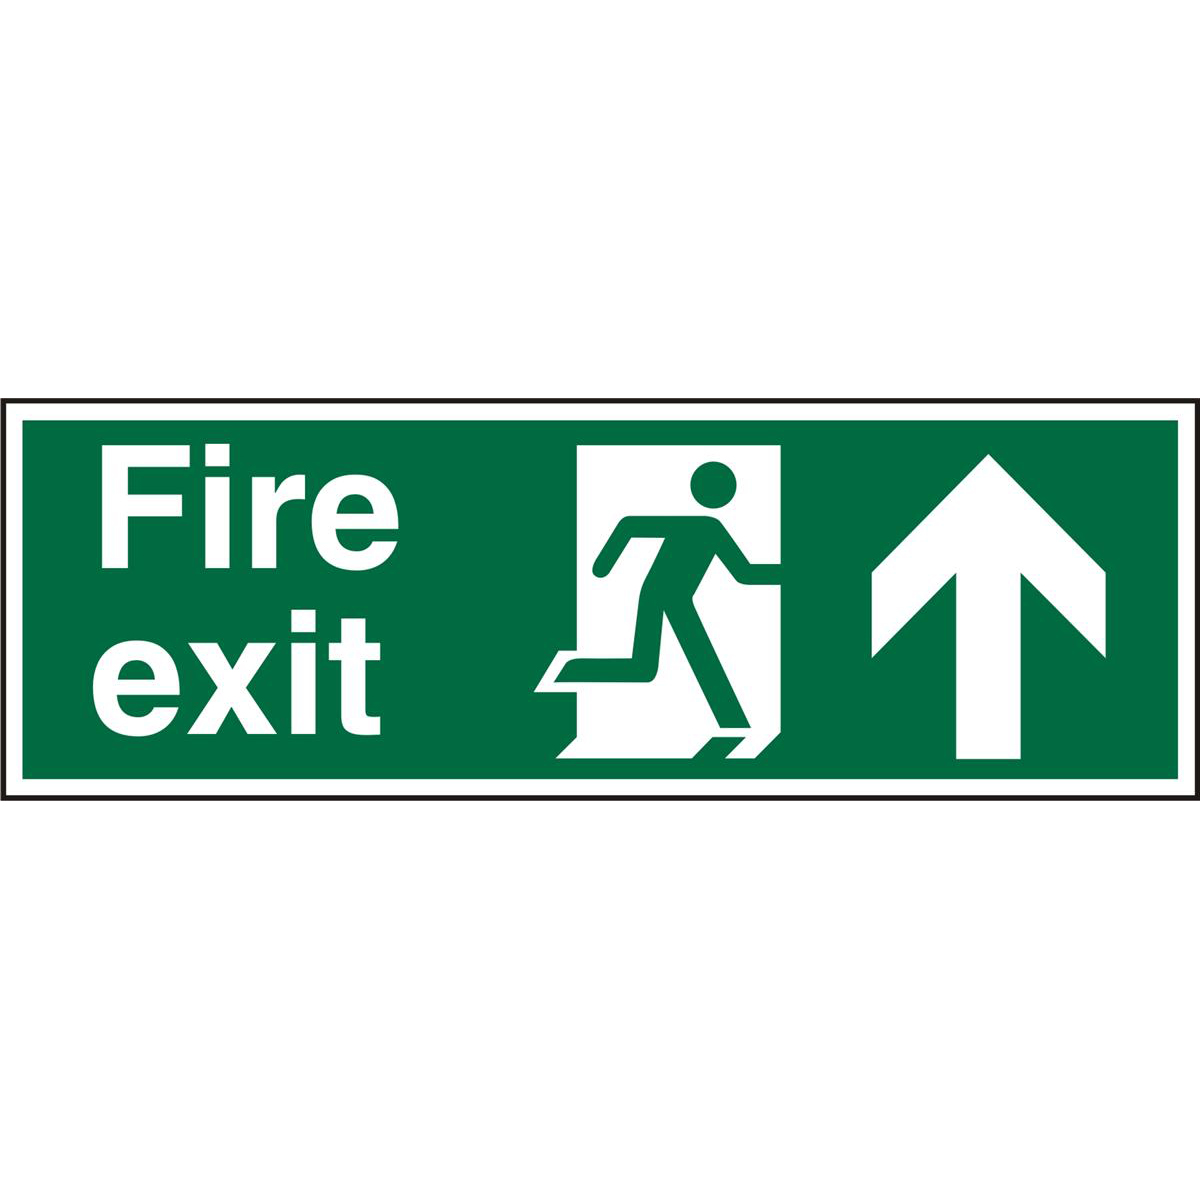 PhotolumSign 600x200 FireExit Man Running Right&Arrow Up Ref PSP129SRP600x200 *Up to 10 Day Leadtime*